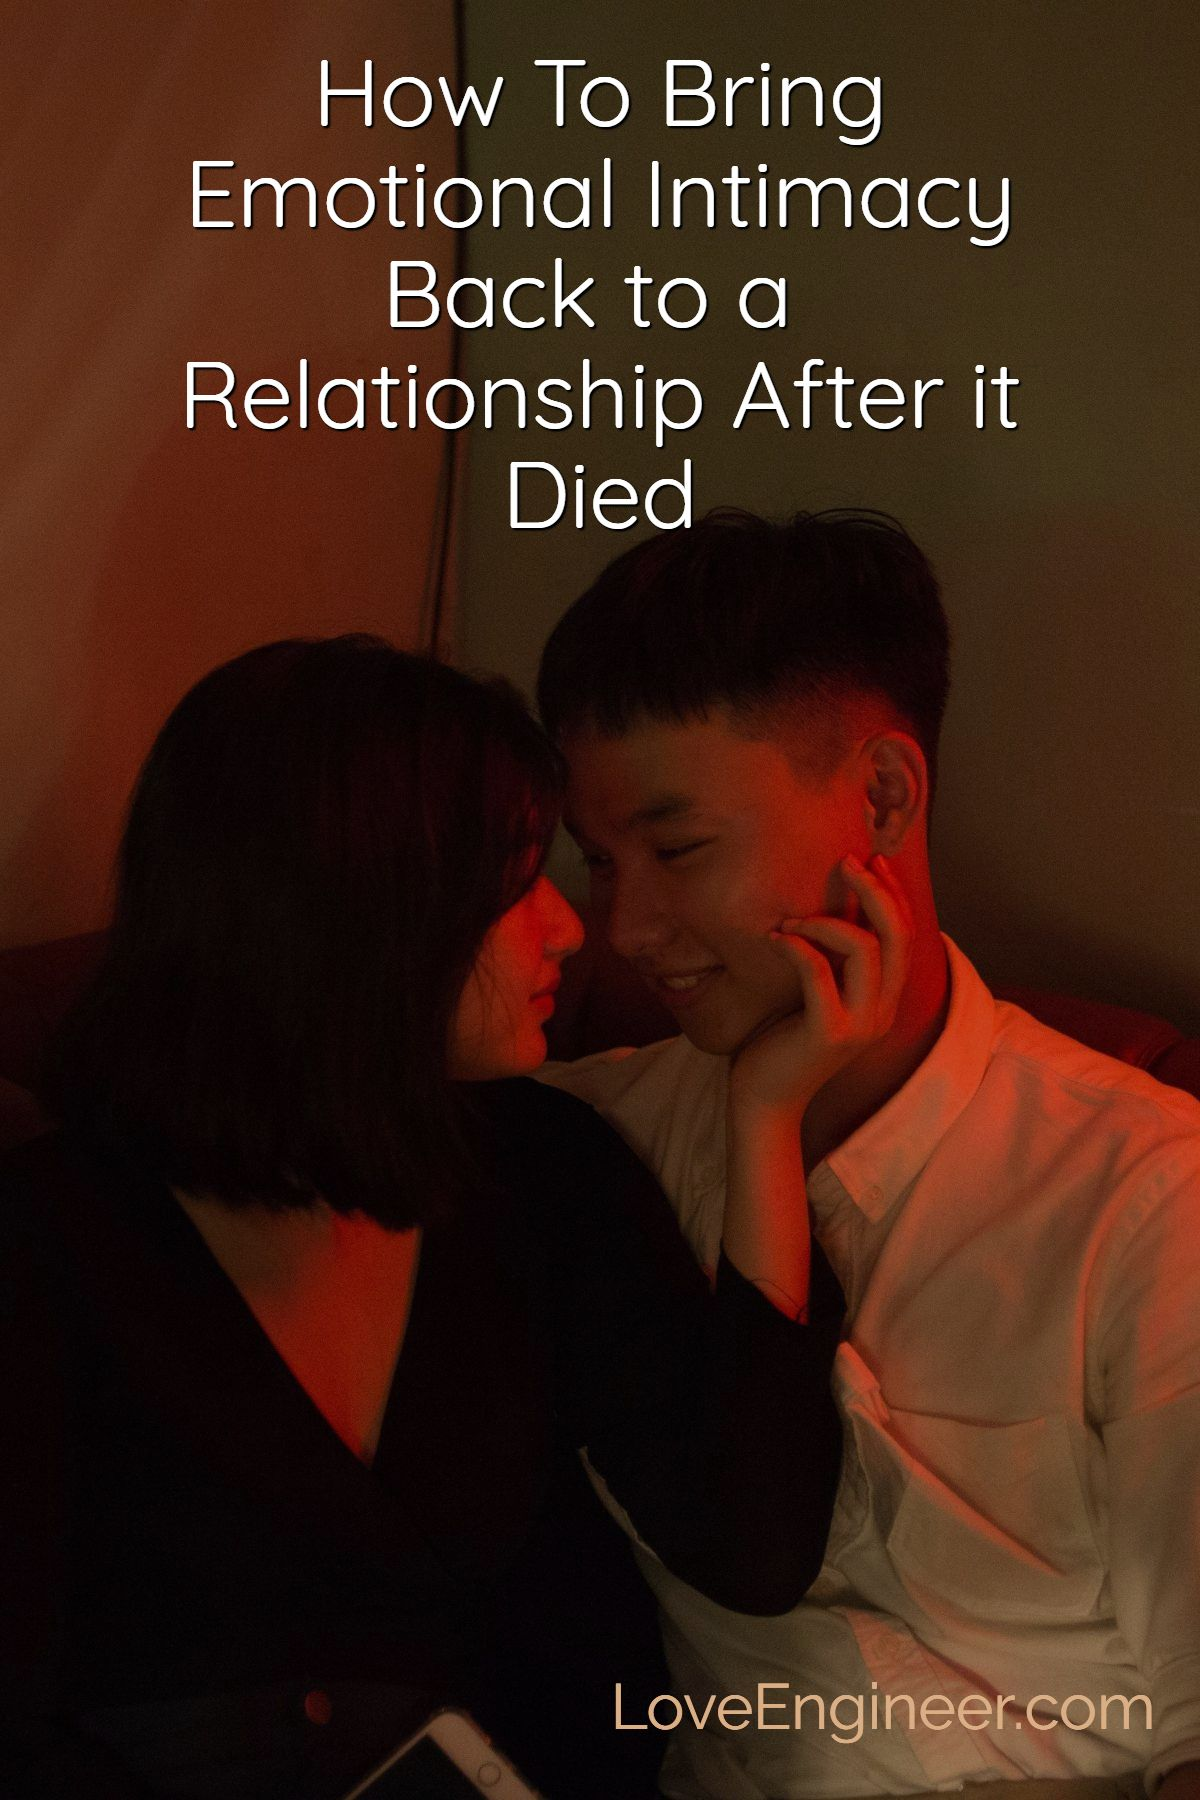 relationships and dating articles